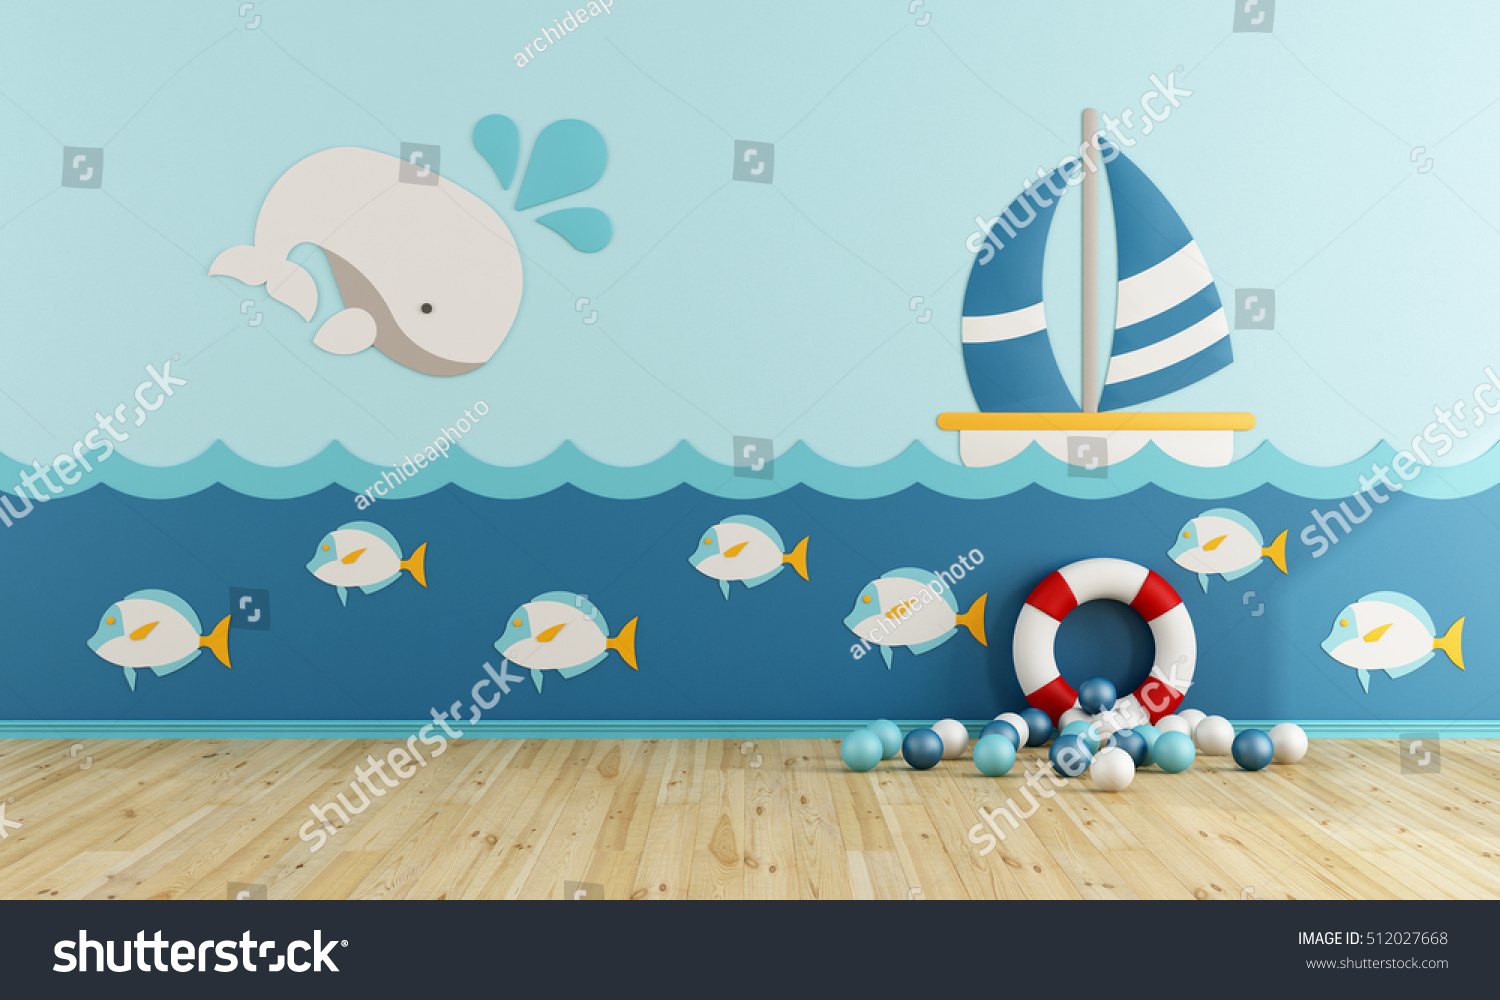 Playroom In Marine Style Without Furniture   3d Rendering